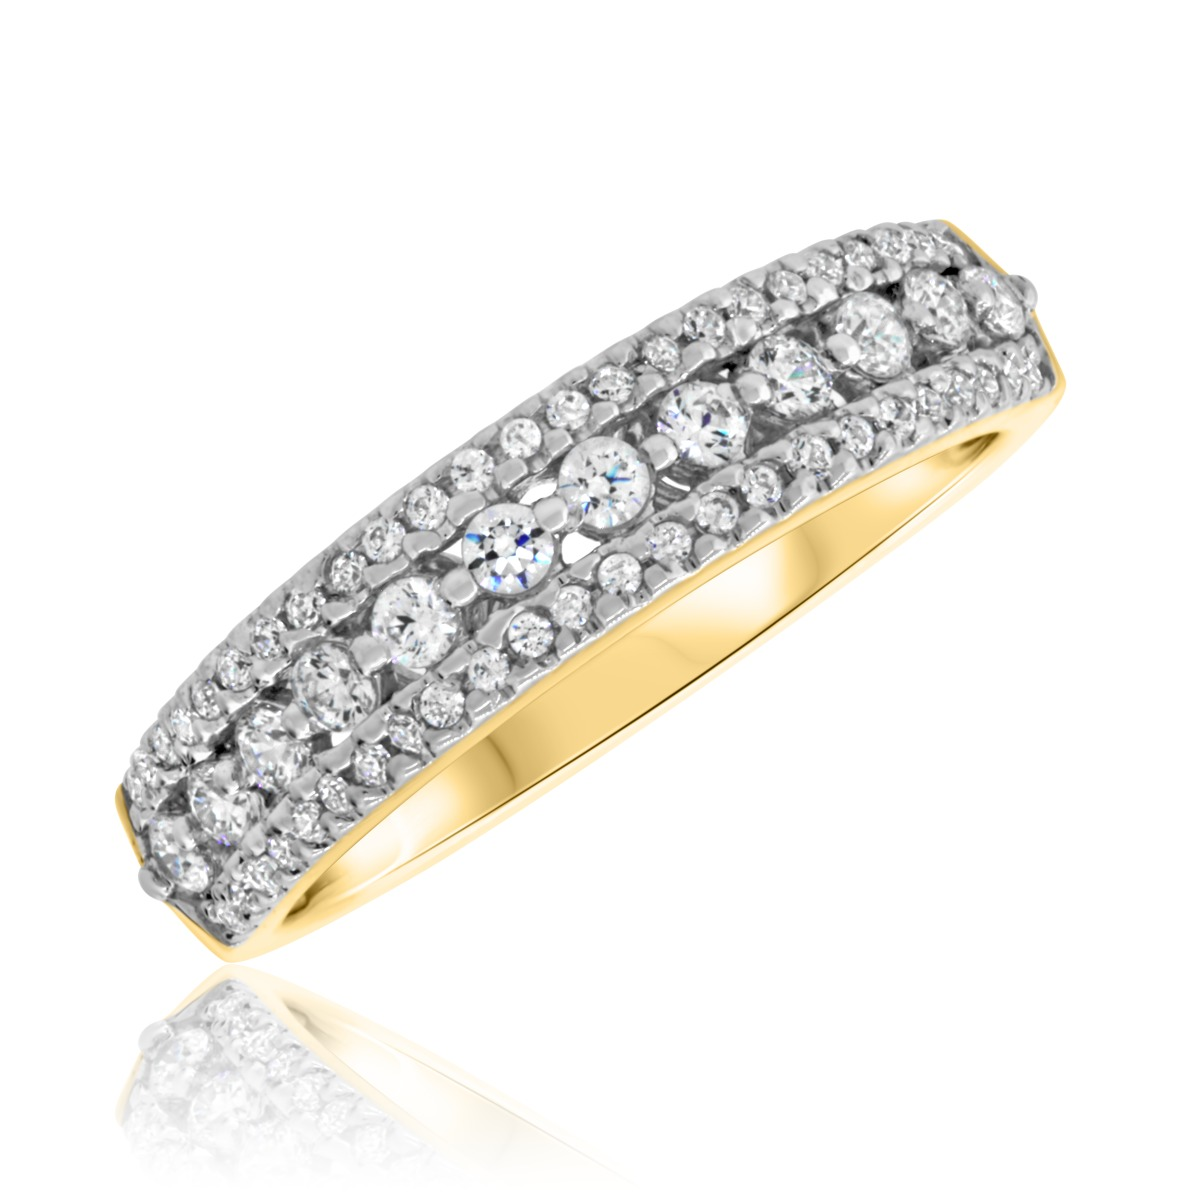 1/2 CT. T.W. Diamond Ladies Wedding Band  14K Yellow Gold